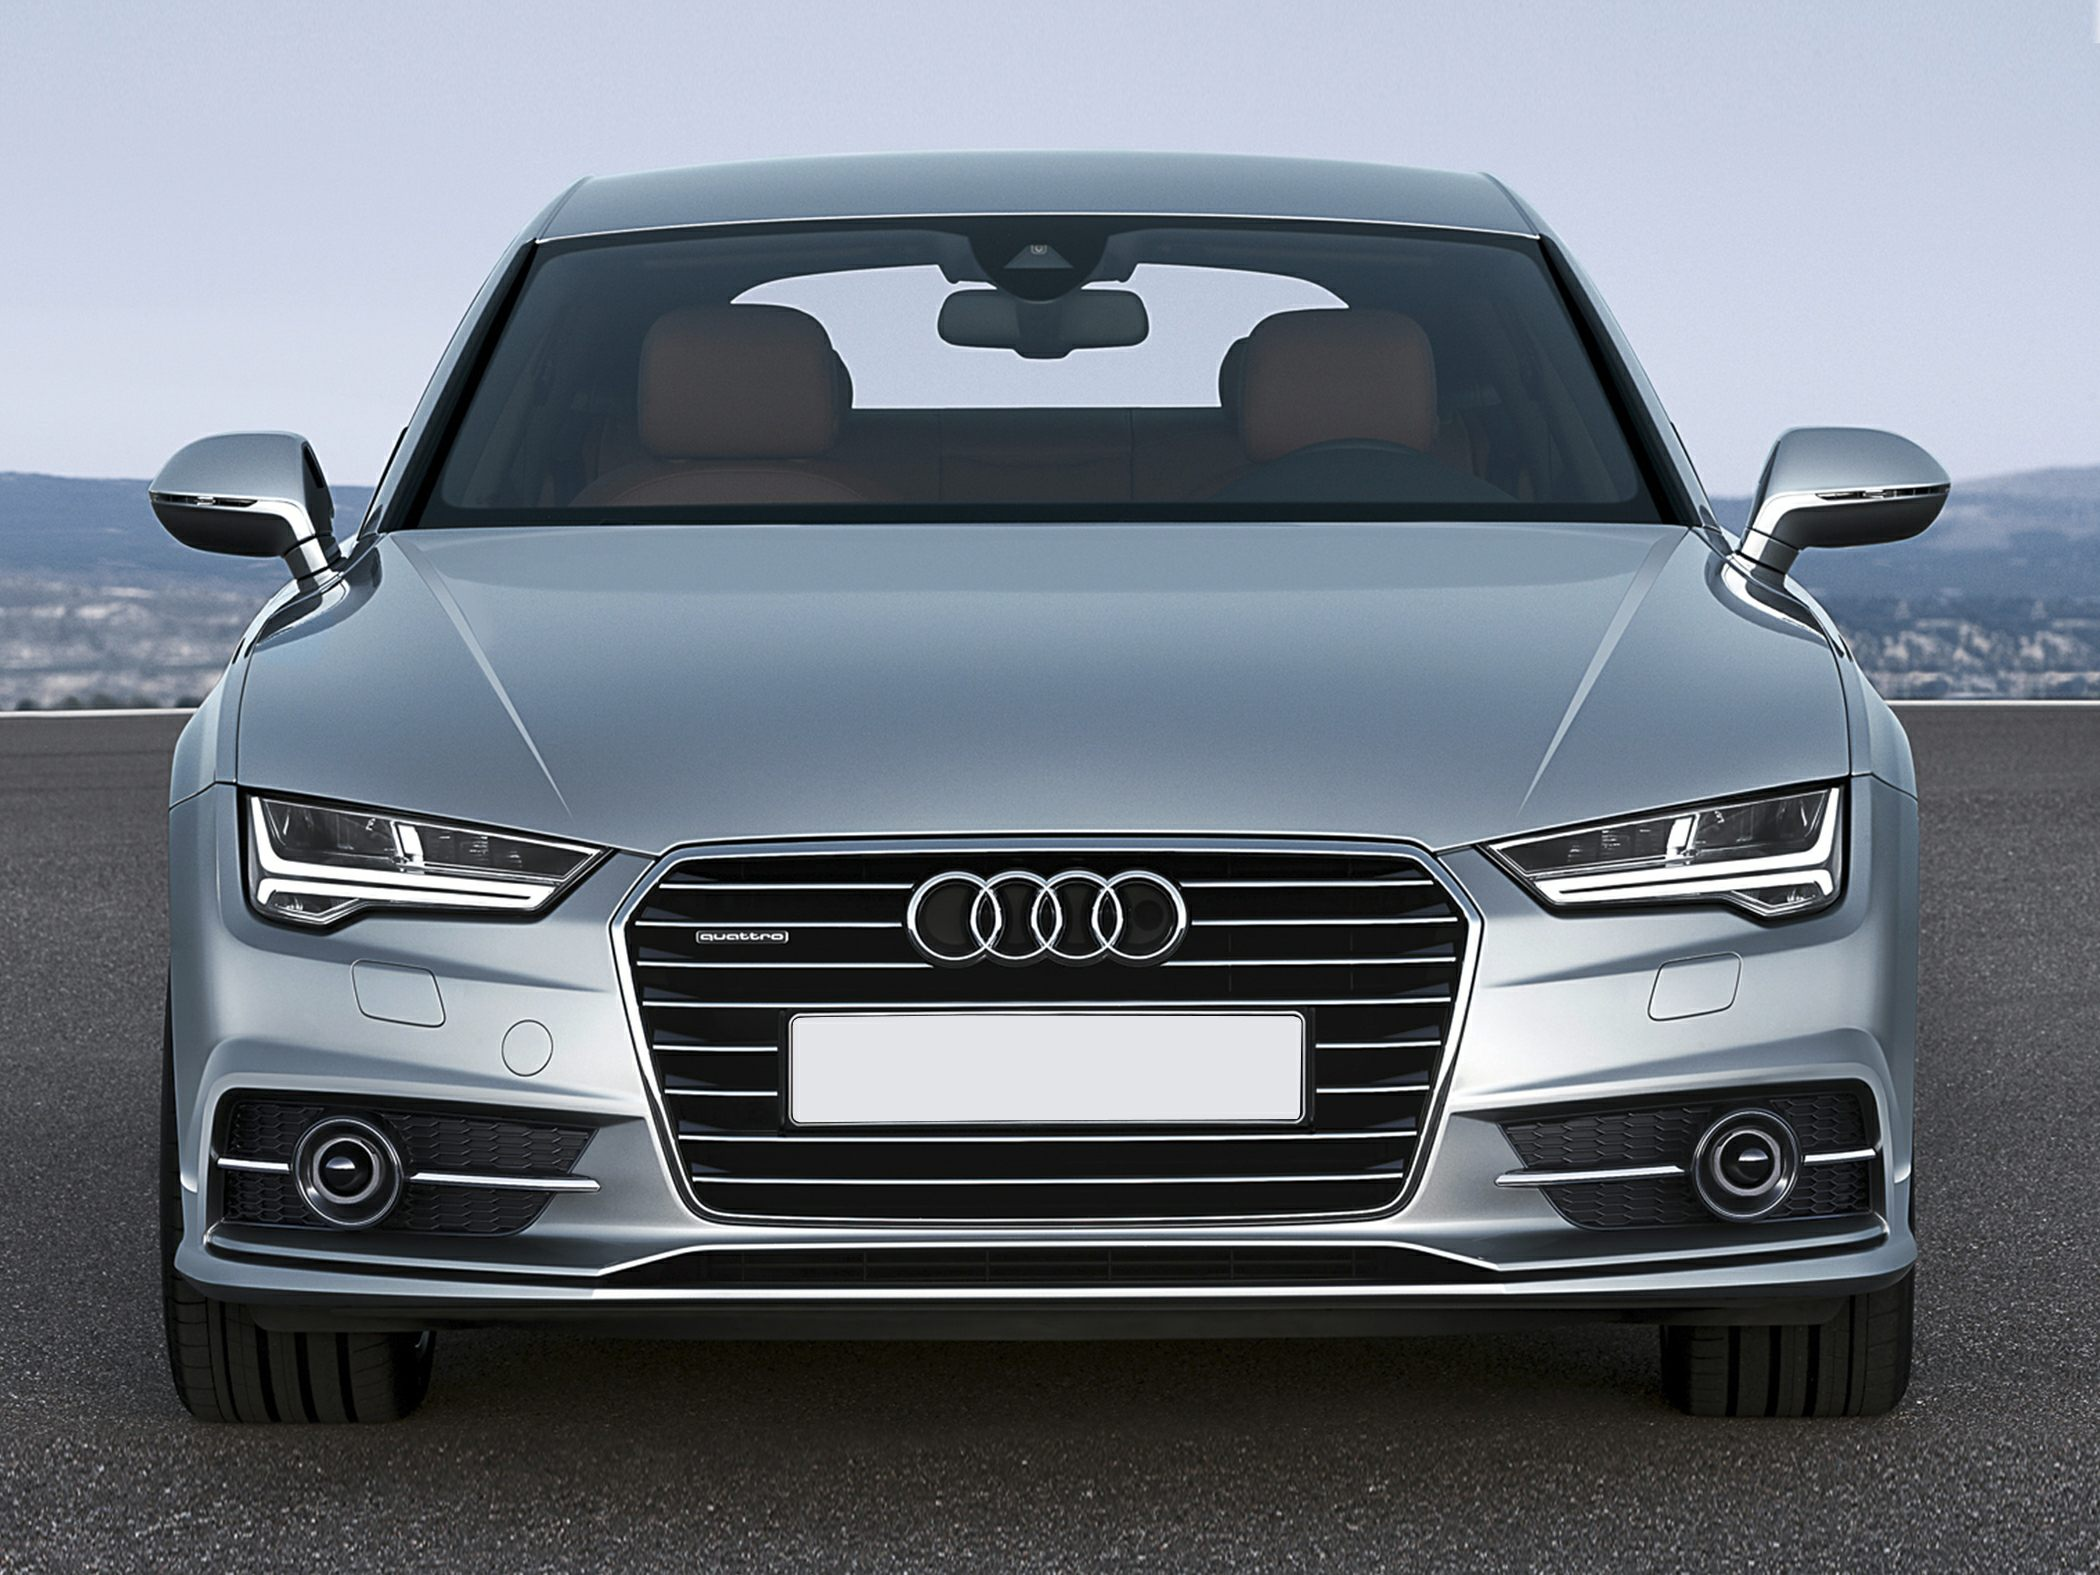 los audi category leases auto hyundai angeles special se at specials sedan car superstore lease sonata new month